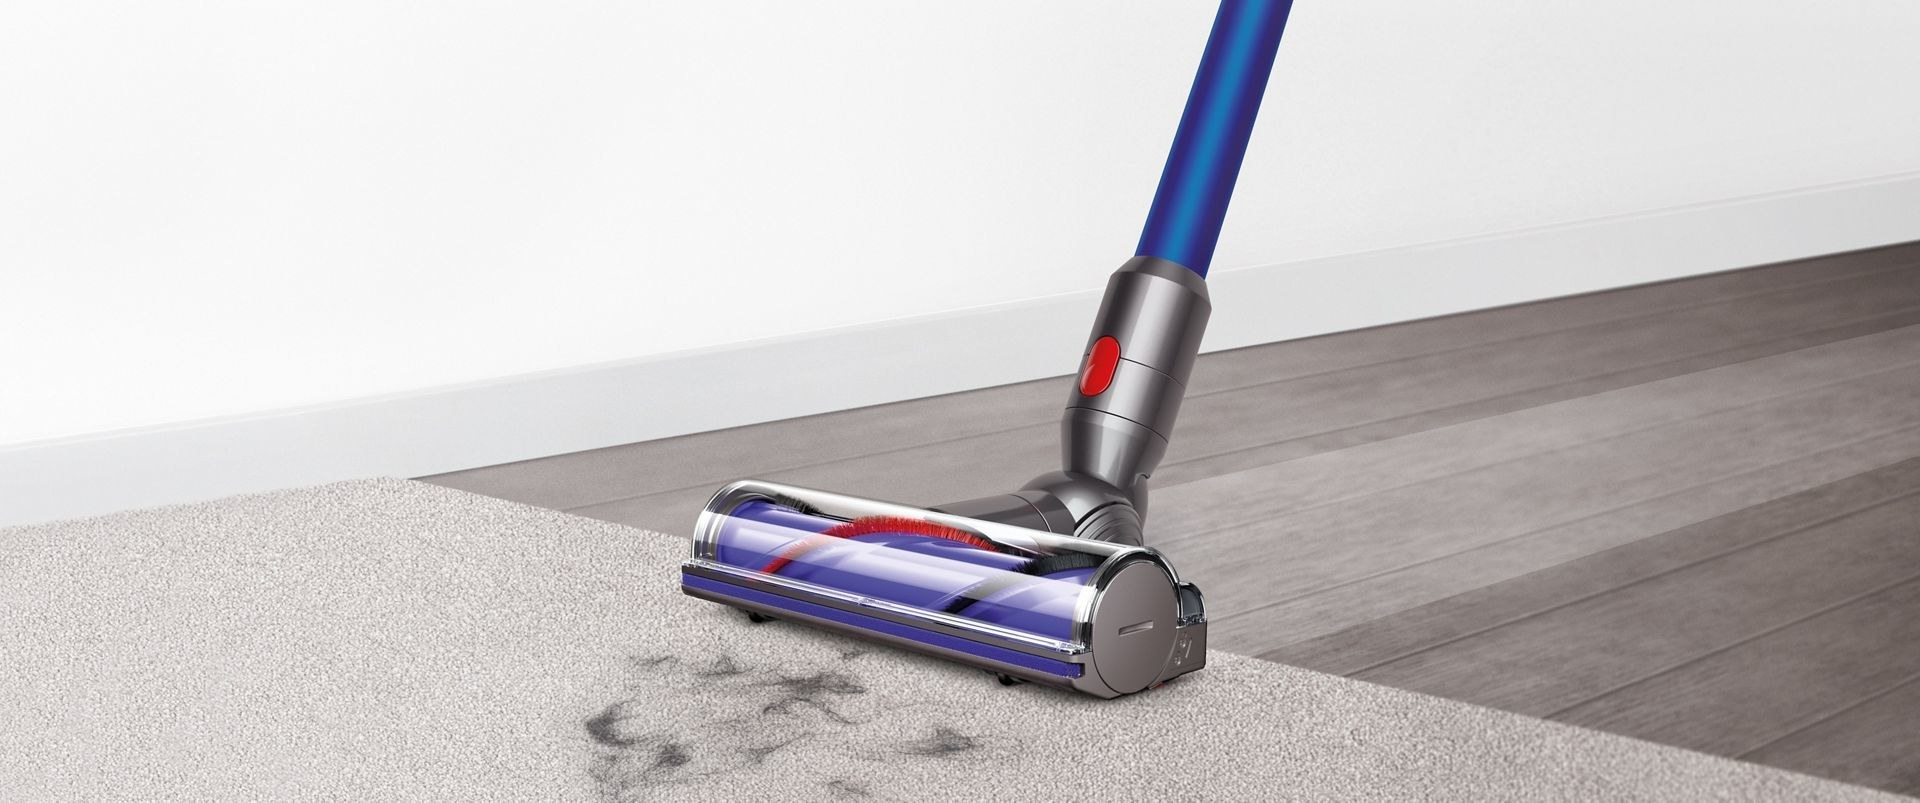 a vacuum cleaner sucking up pet hair from a rug